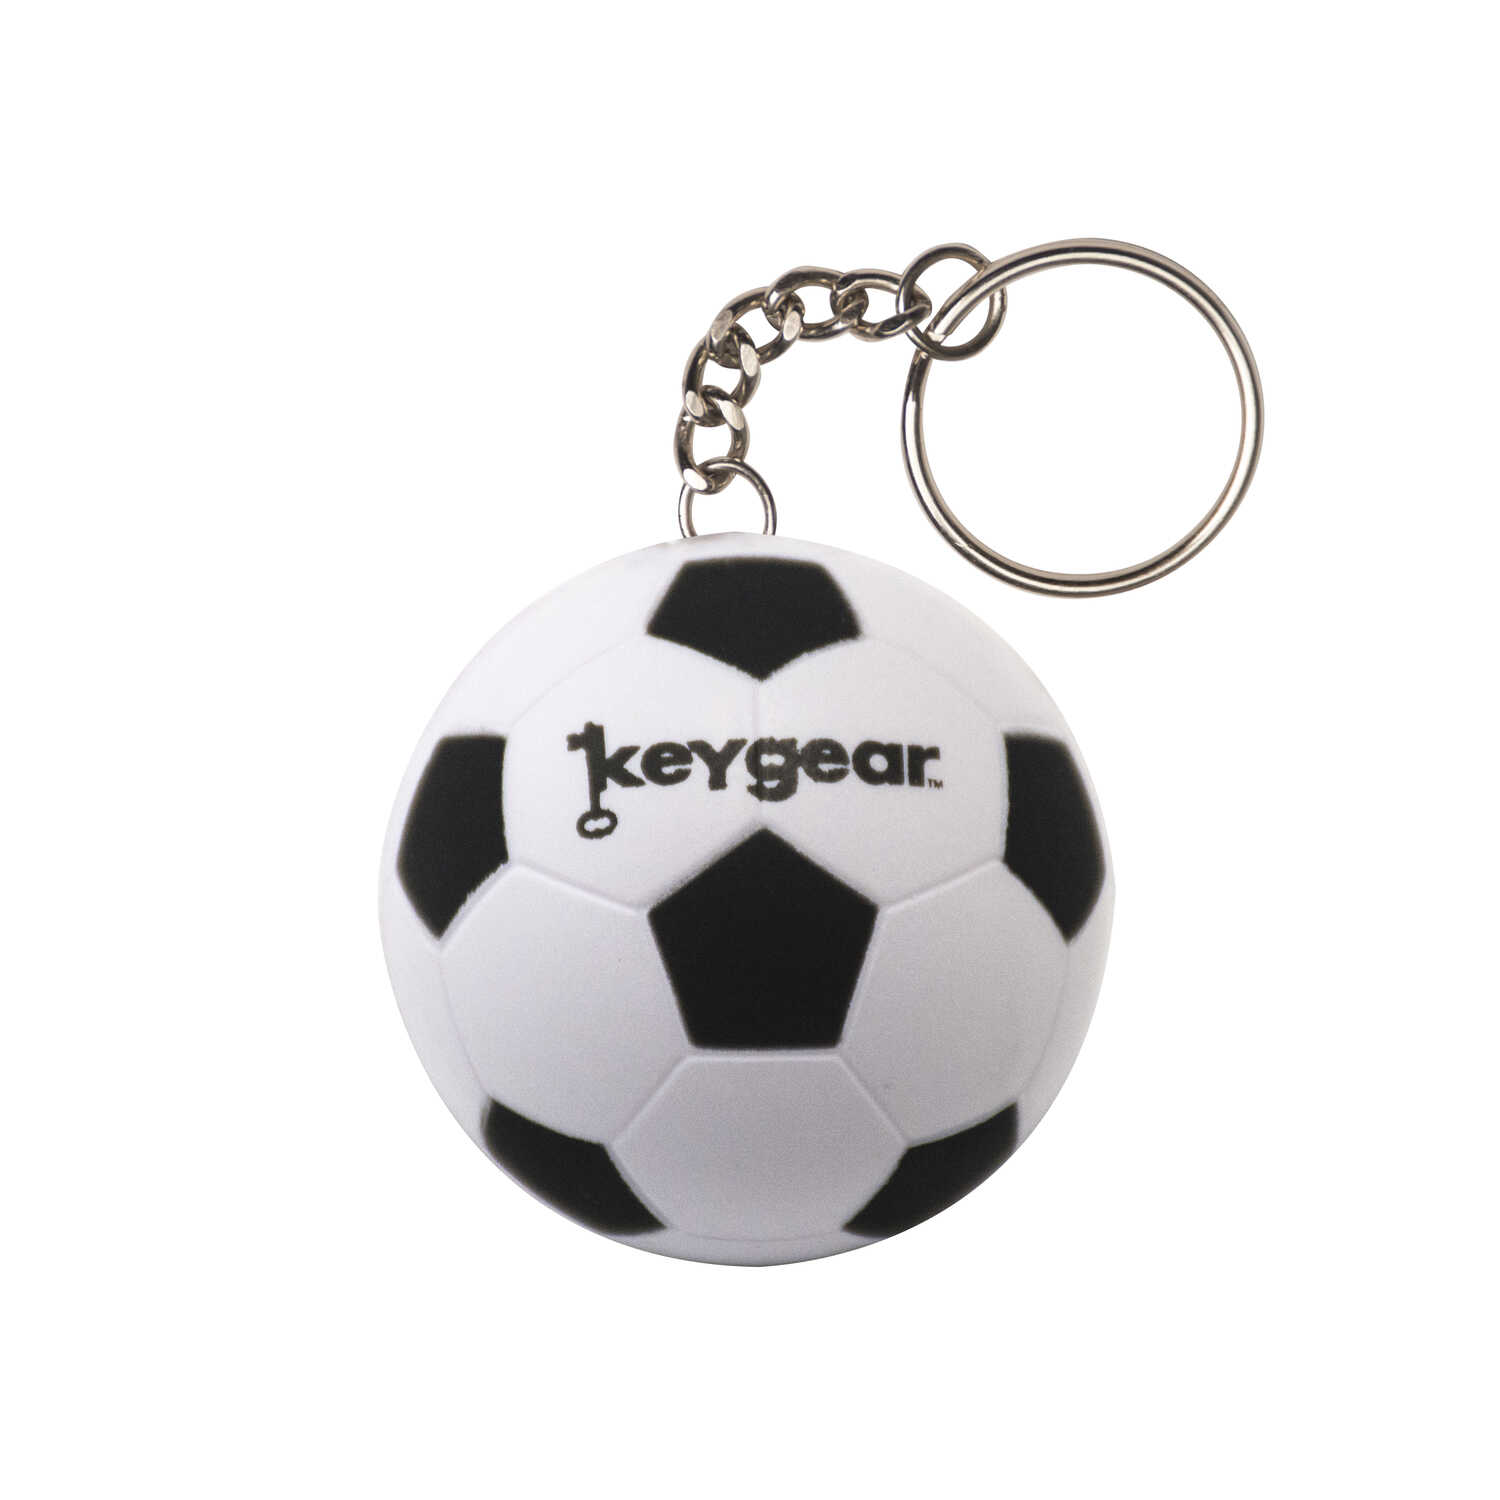 KeyGear  Rubber  White  Stress Ball, Soccer  Key Chain